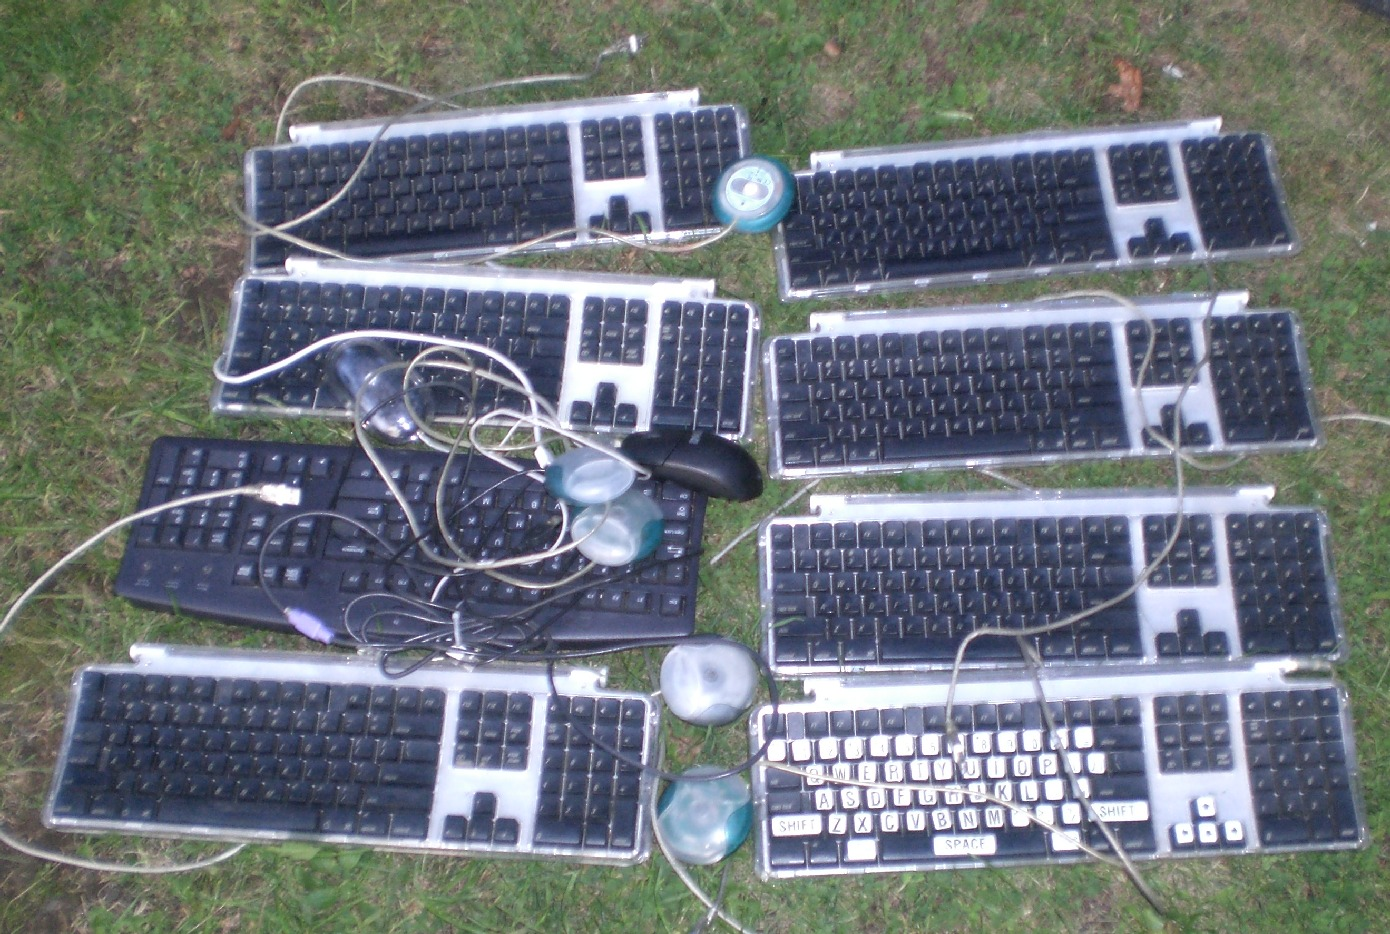 mac keyboards